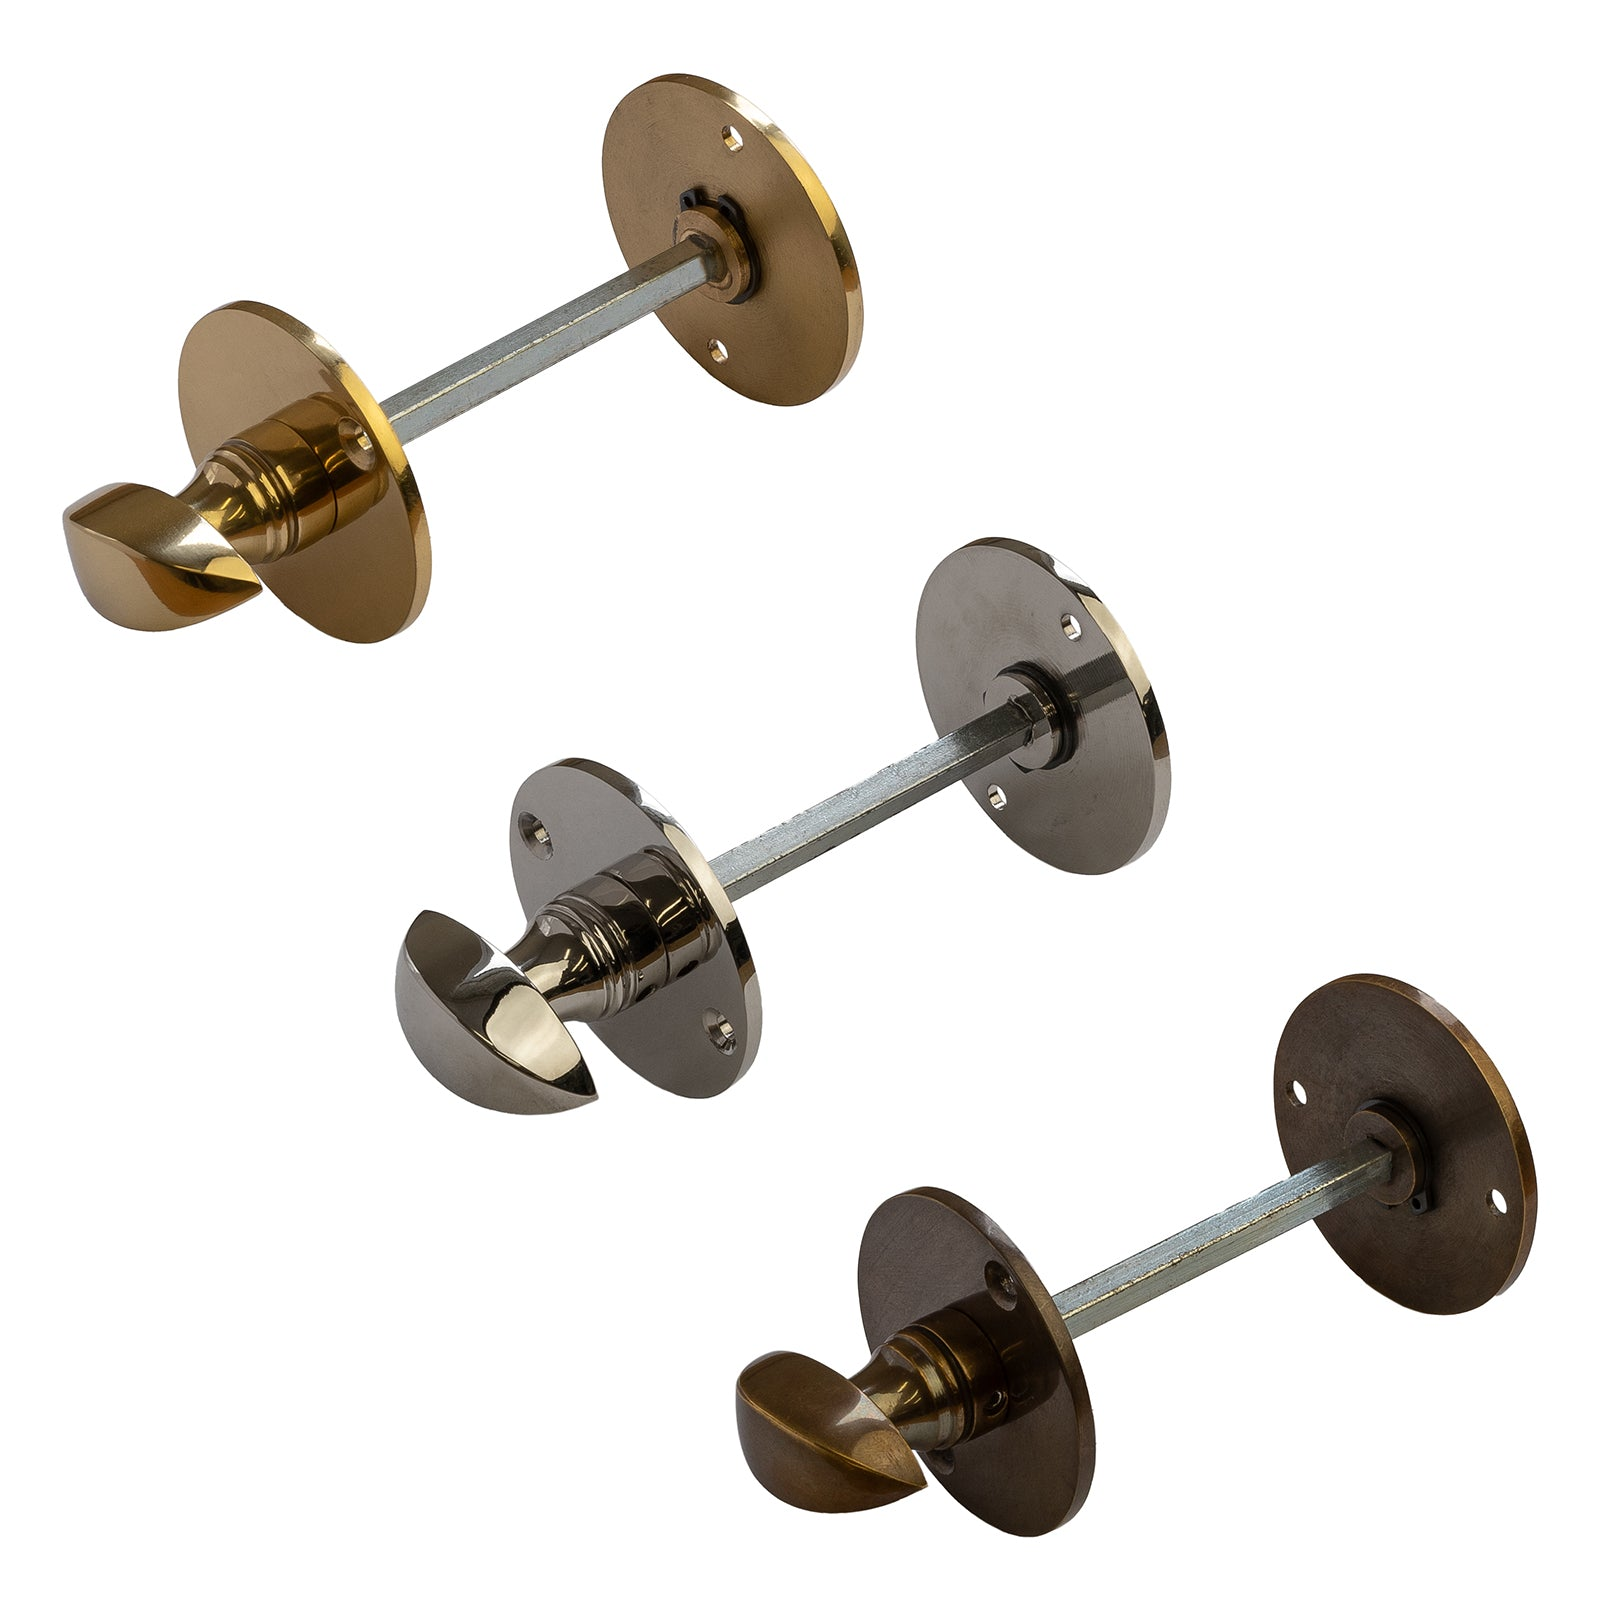 Classic Bathroom Turn & Releases solid brass